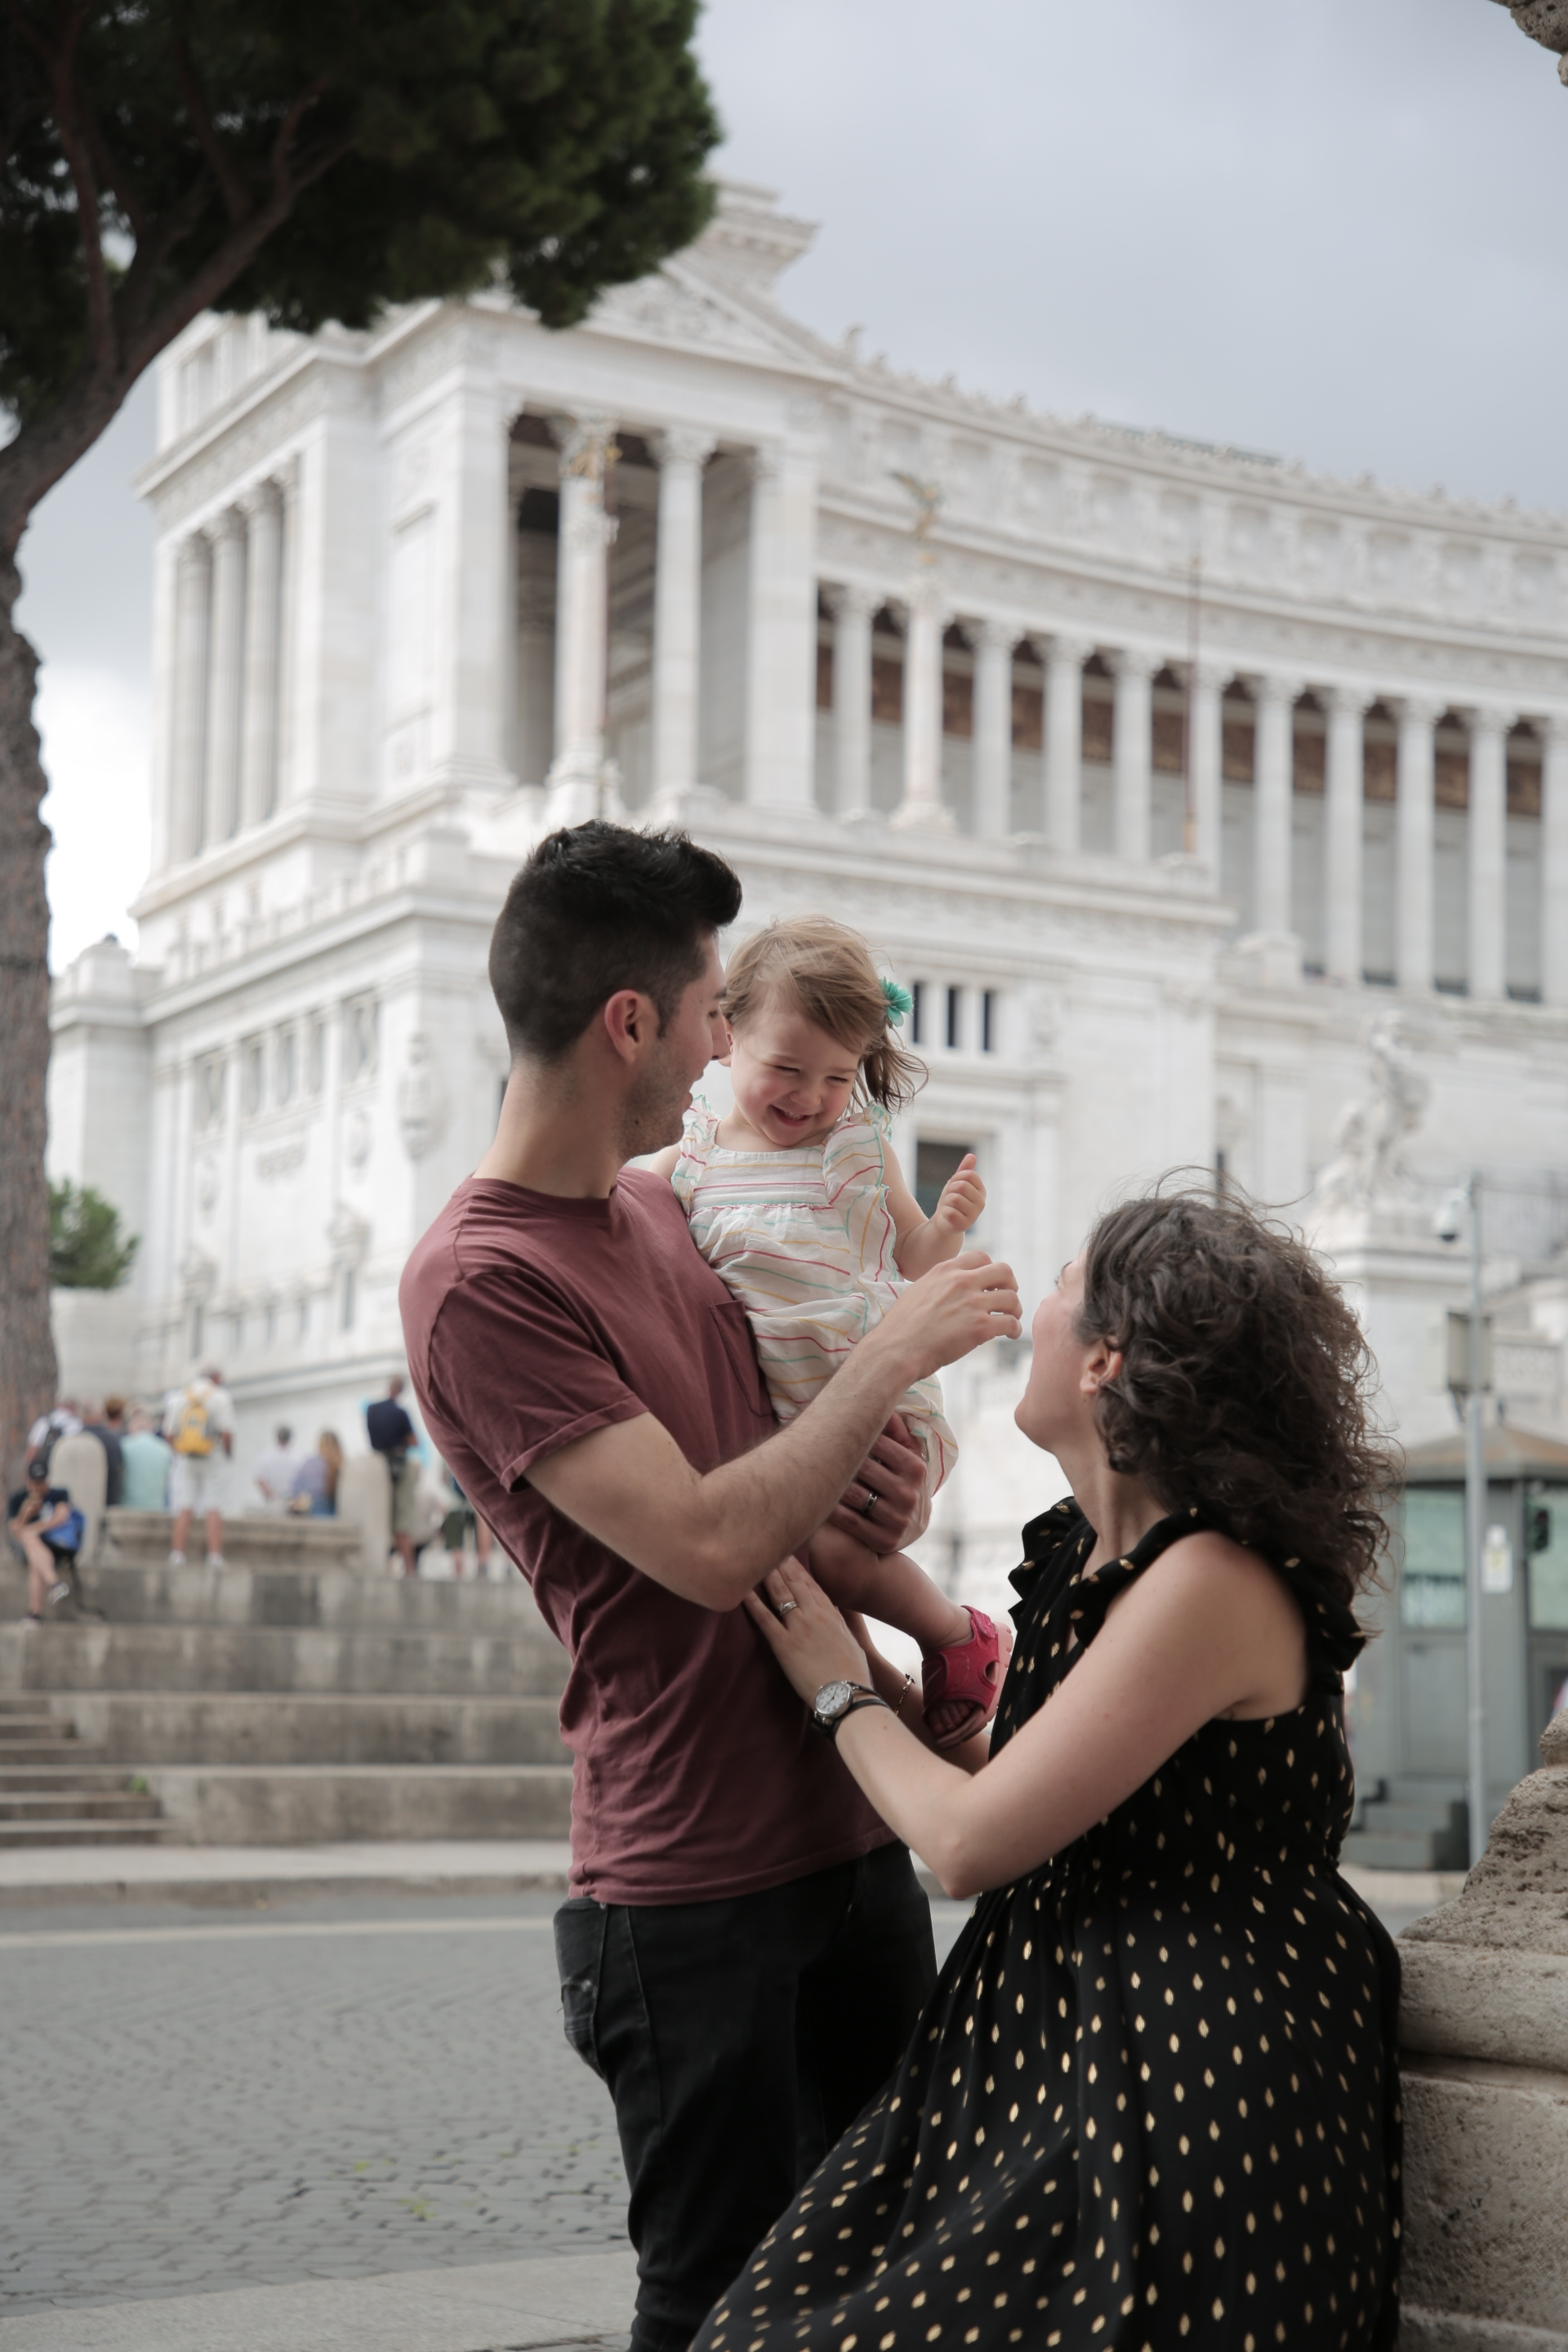 From our amazing Airbnb Experience Photographer in Roma.